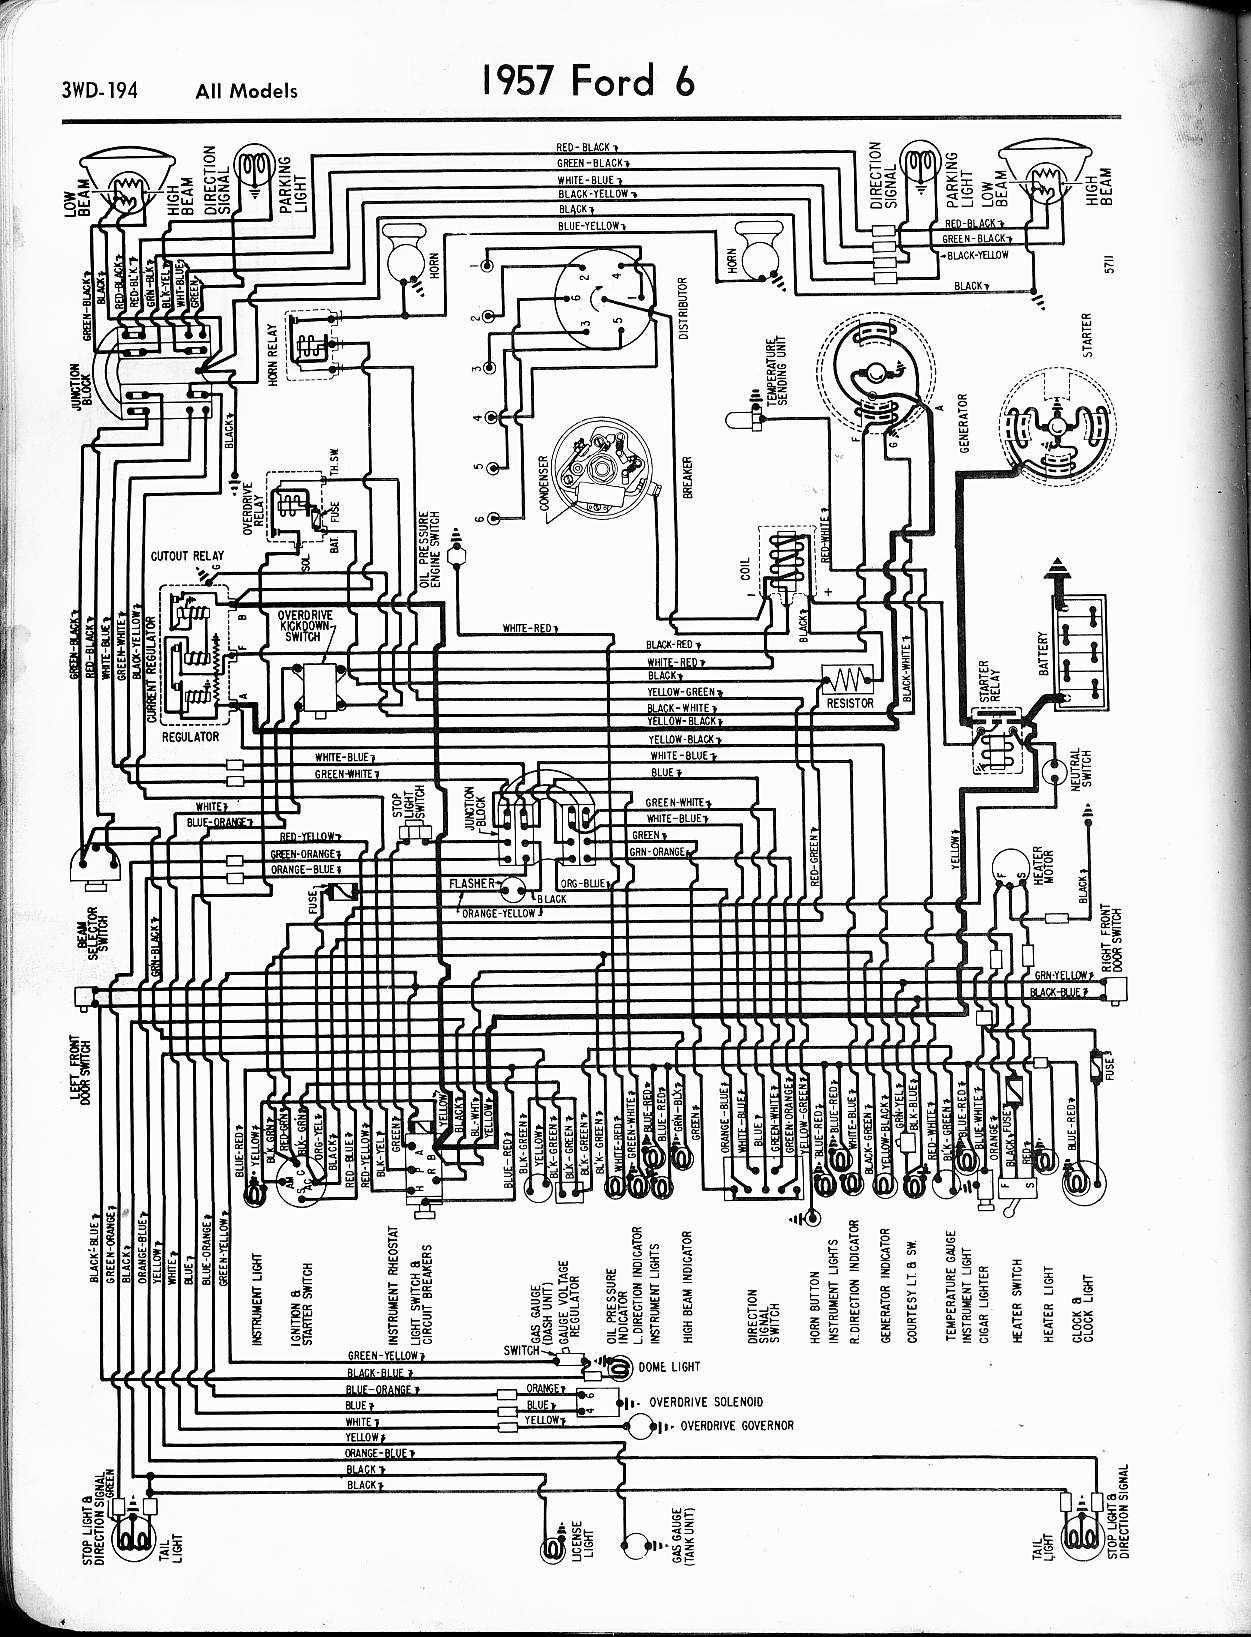 Ba Falcon Engine Diagram ford Wiring Parts Wiring Diagram Of Ba Falcon Engine Diagram